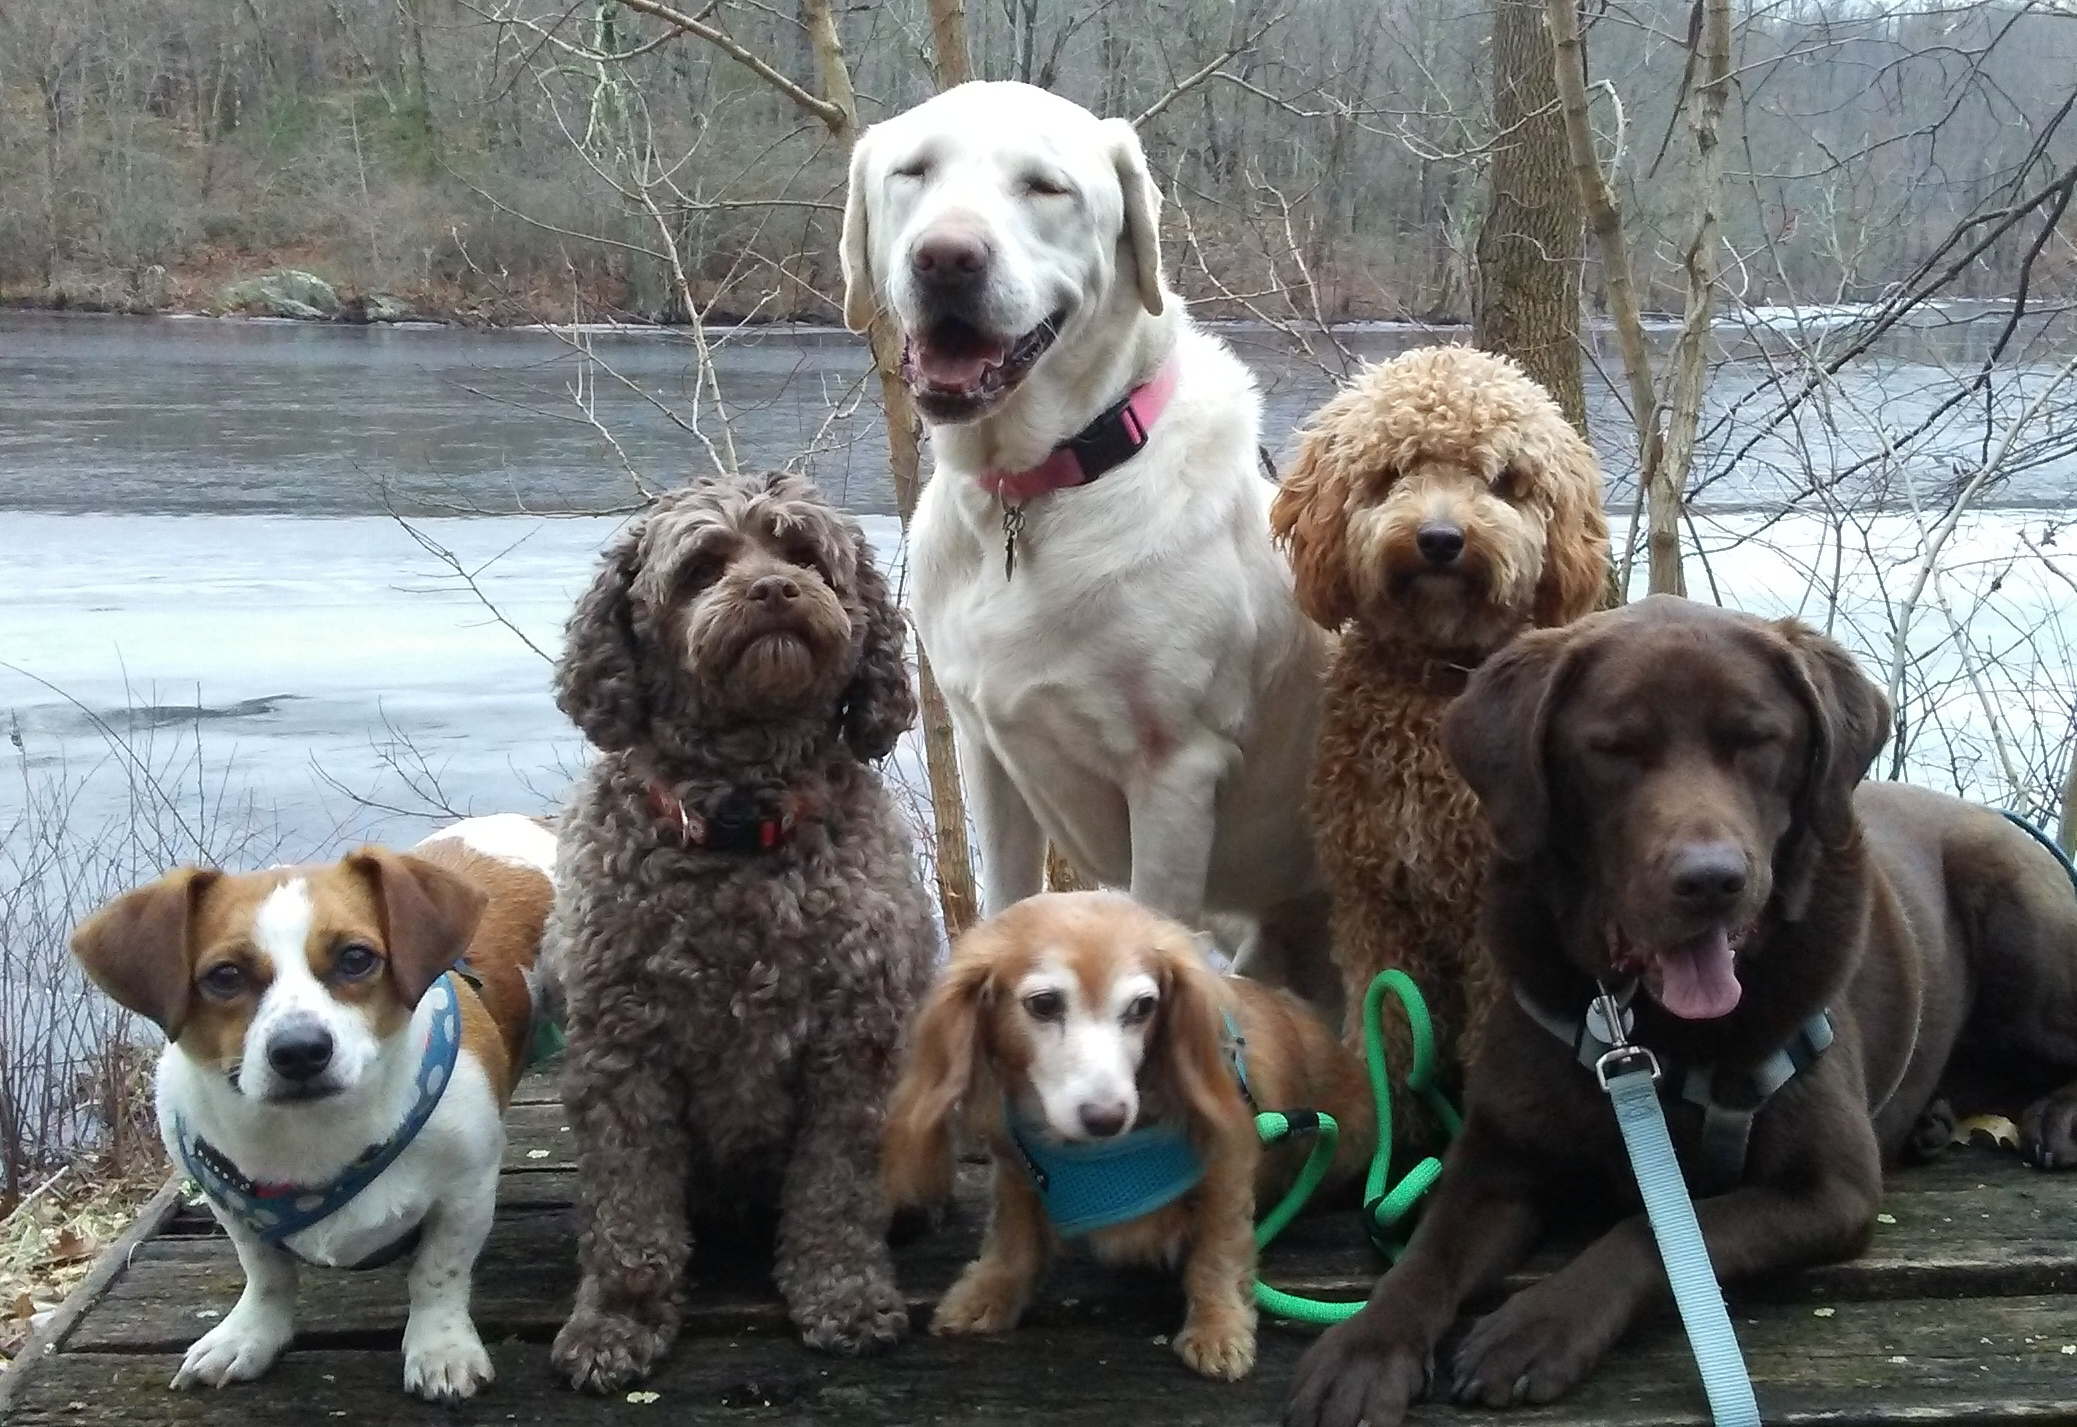 Dog Day Care In Danbury Ct